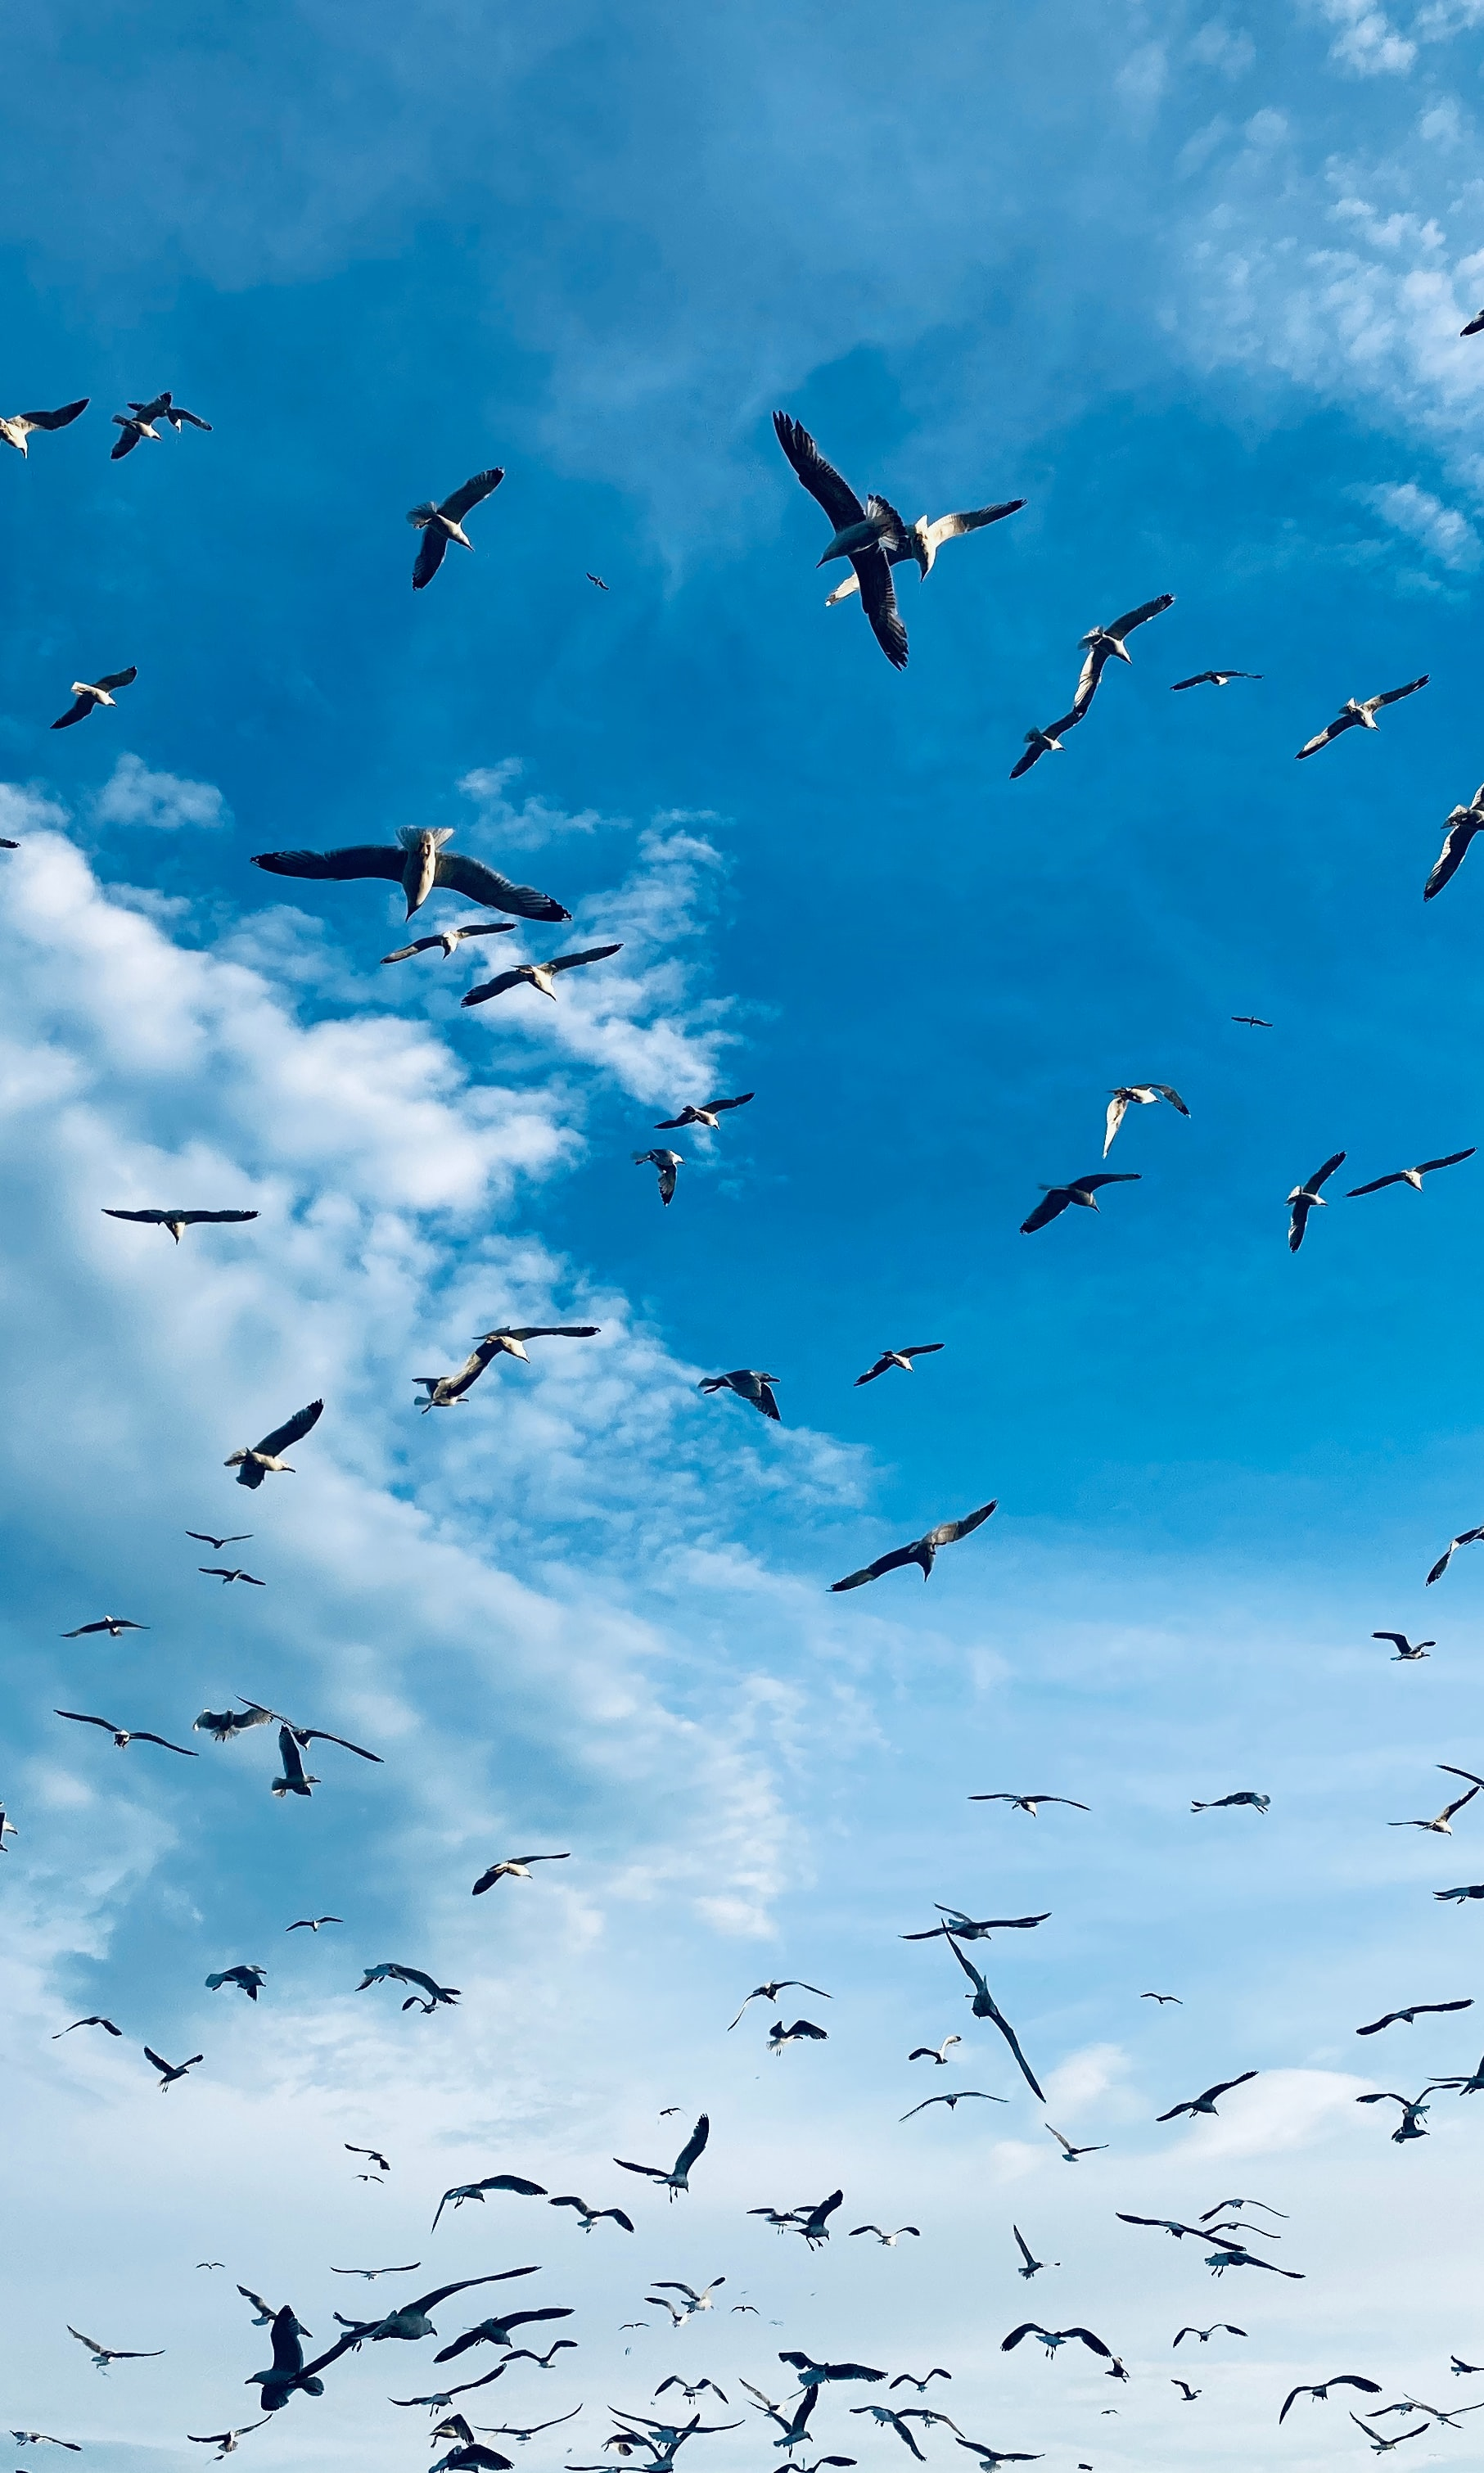 129644 download wallpaper Animals, Birds, Seagulls, Wings, Flock screensavers and pictures for free